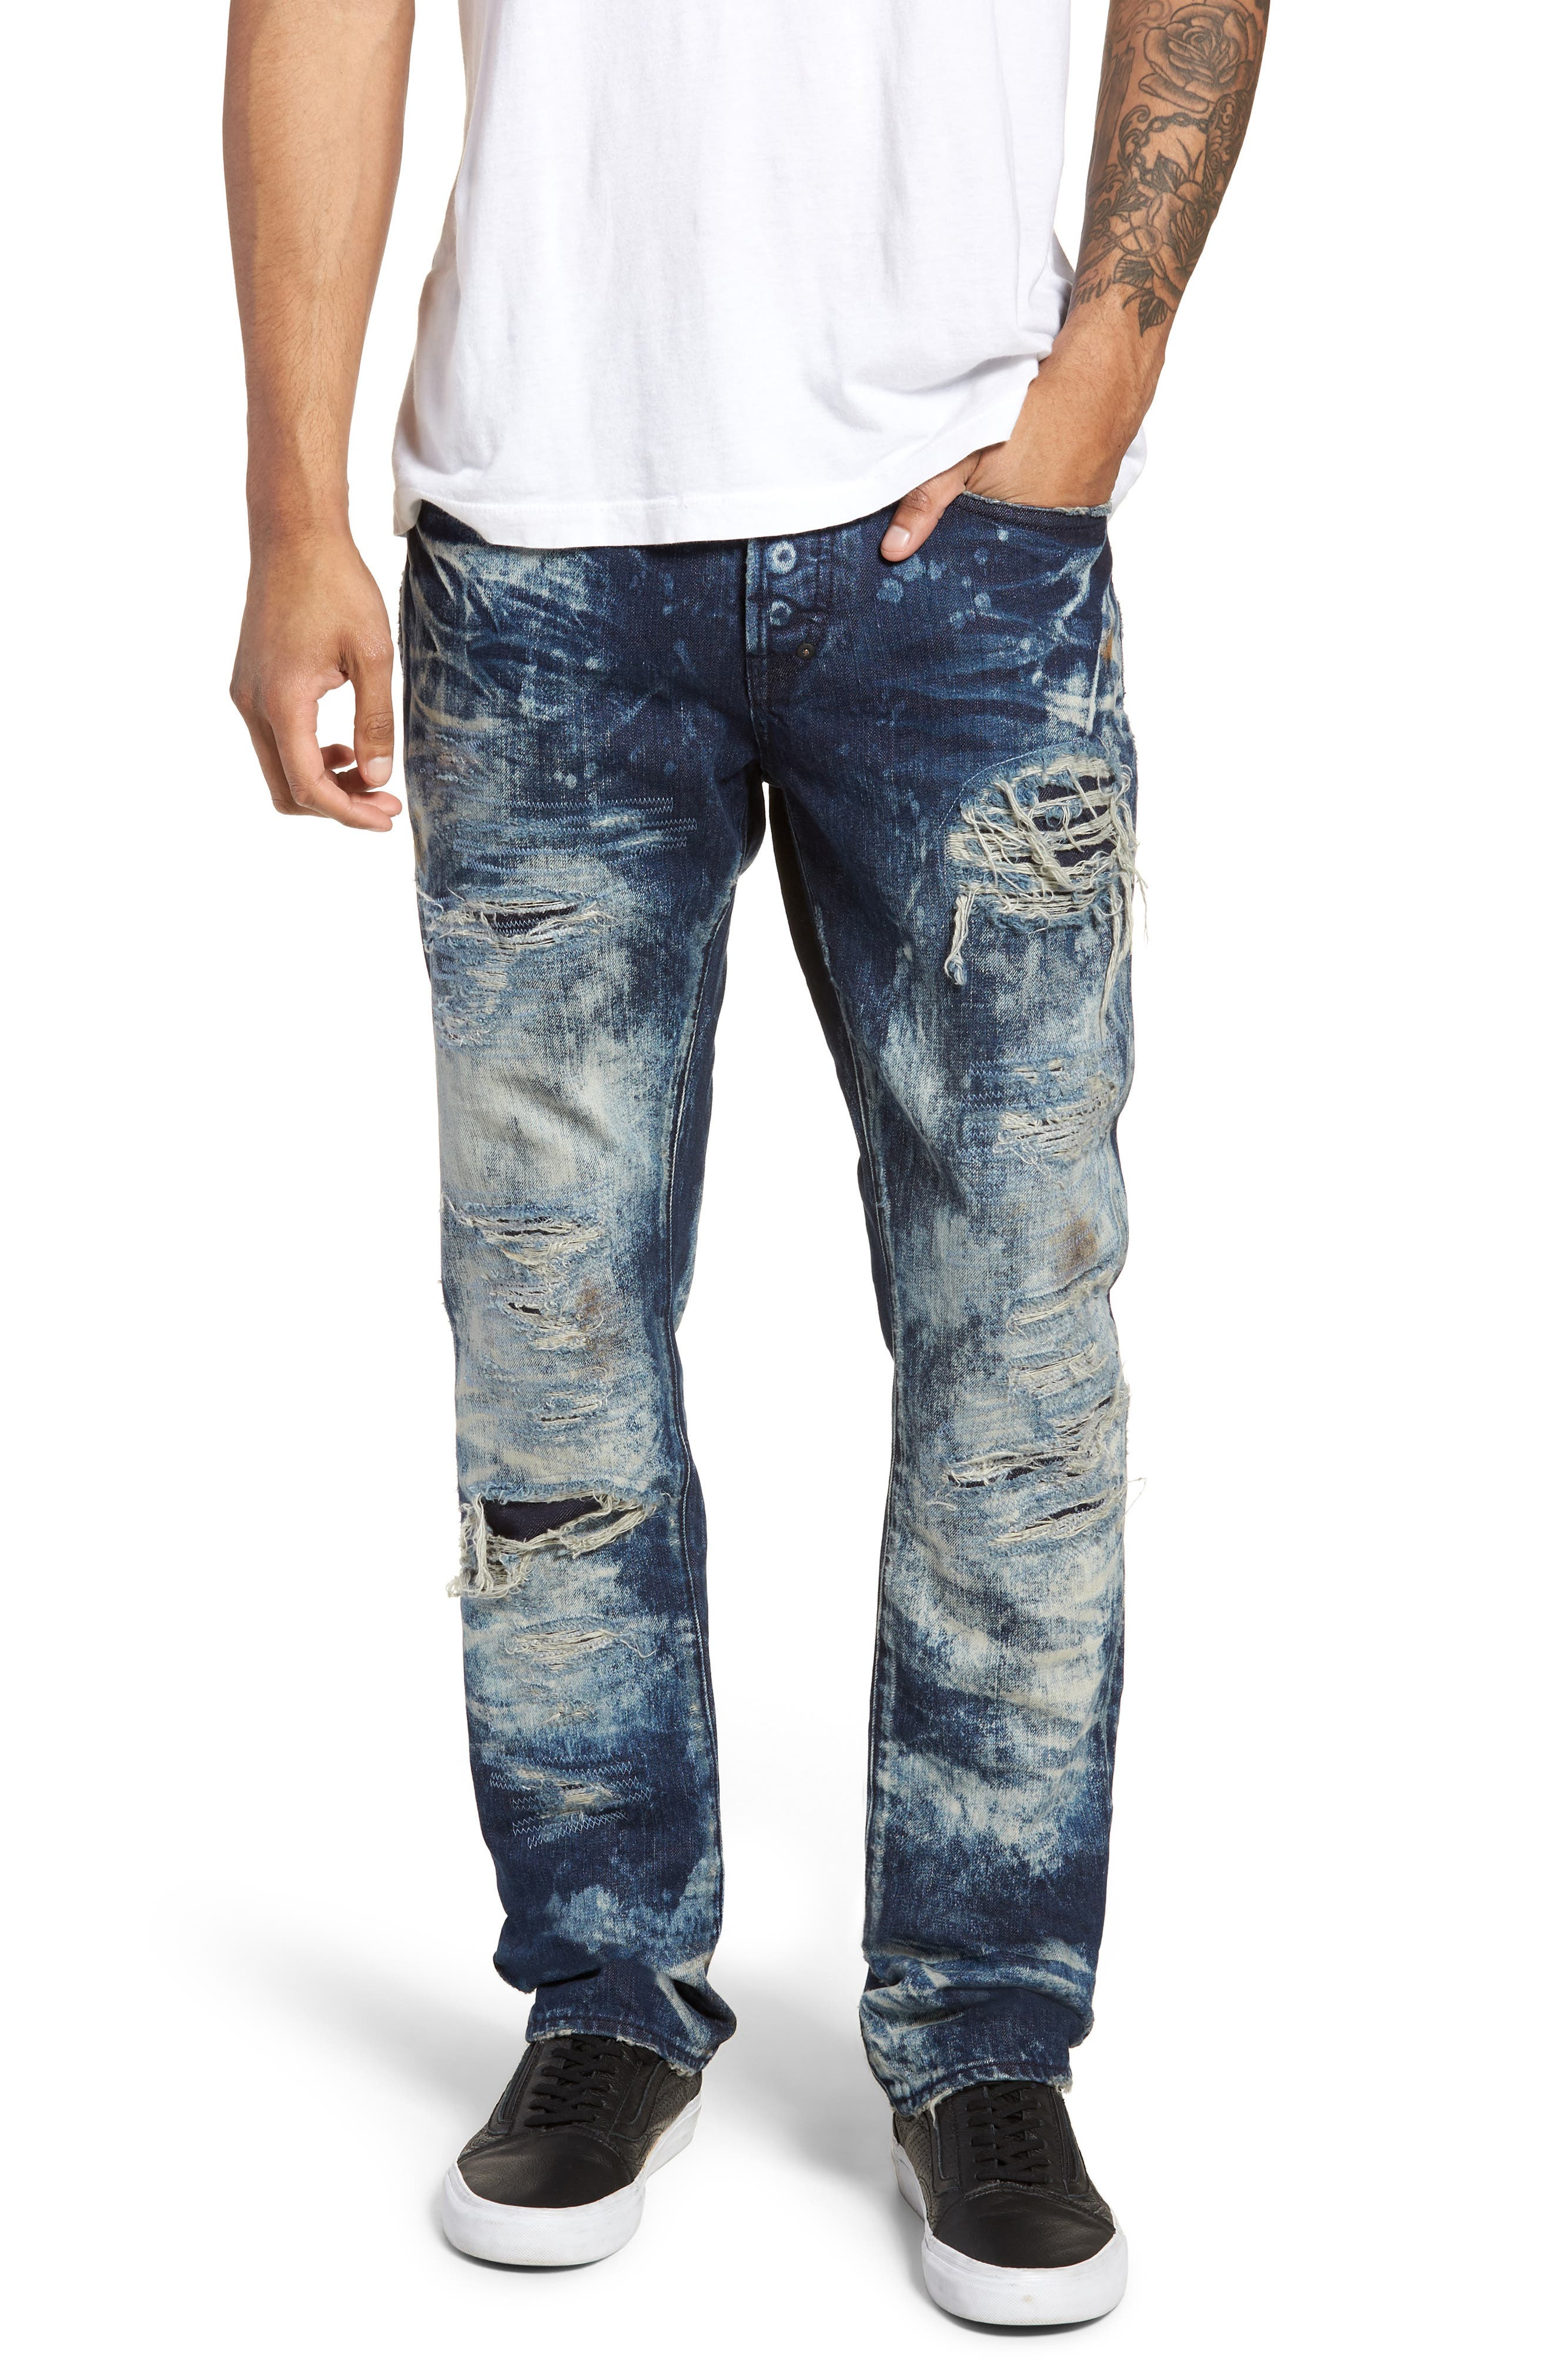 Le Sabre Slim Fit Jeans,                         Main,                         color, Consolation